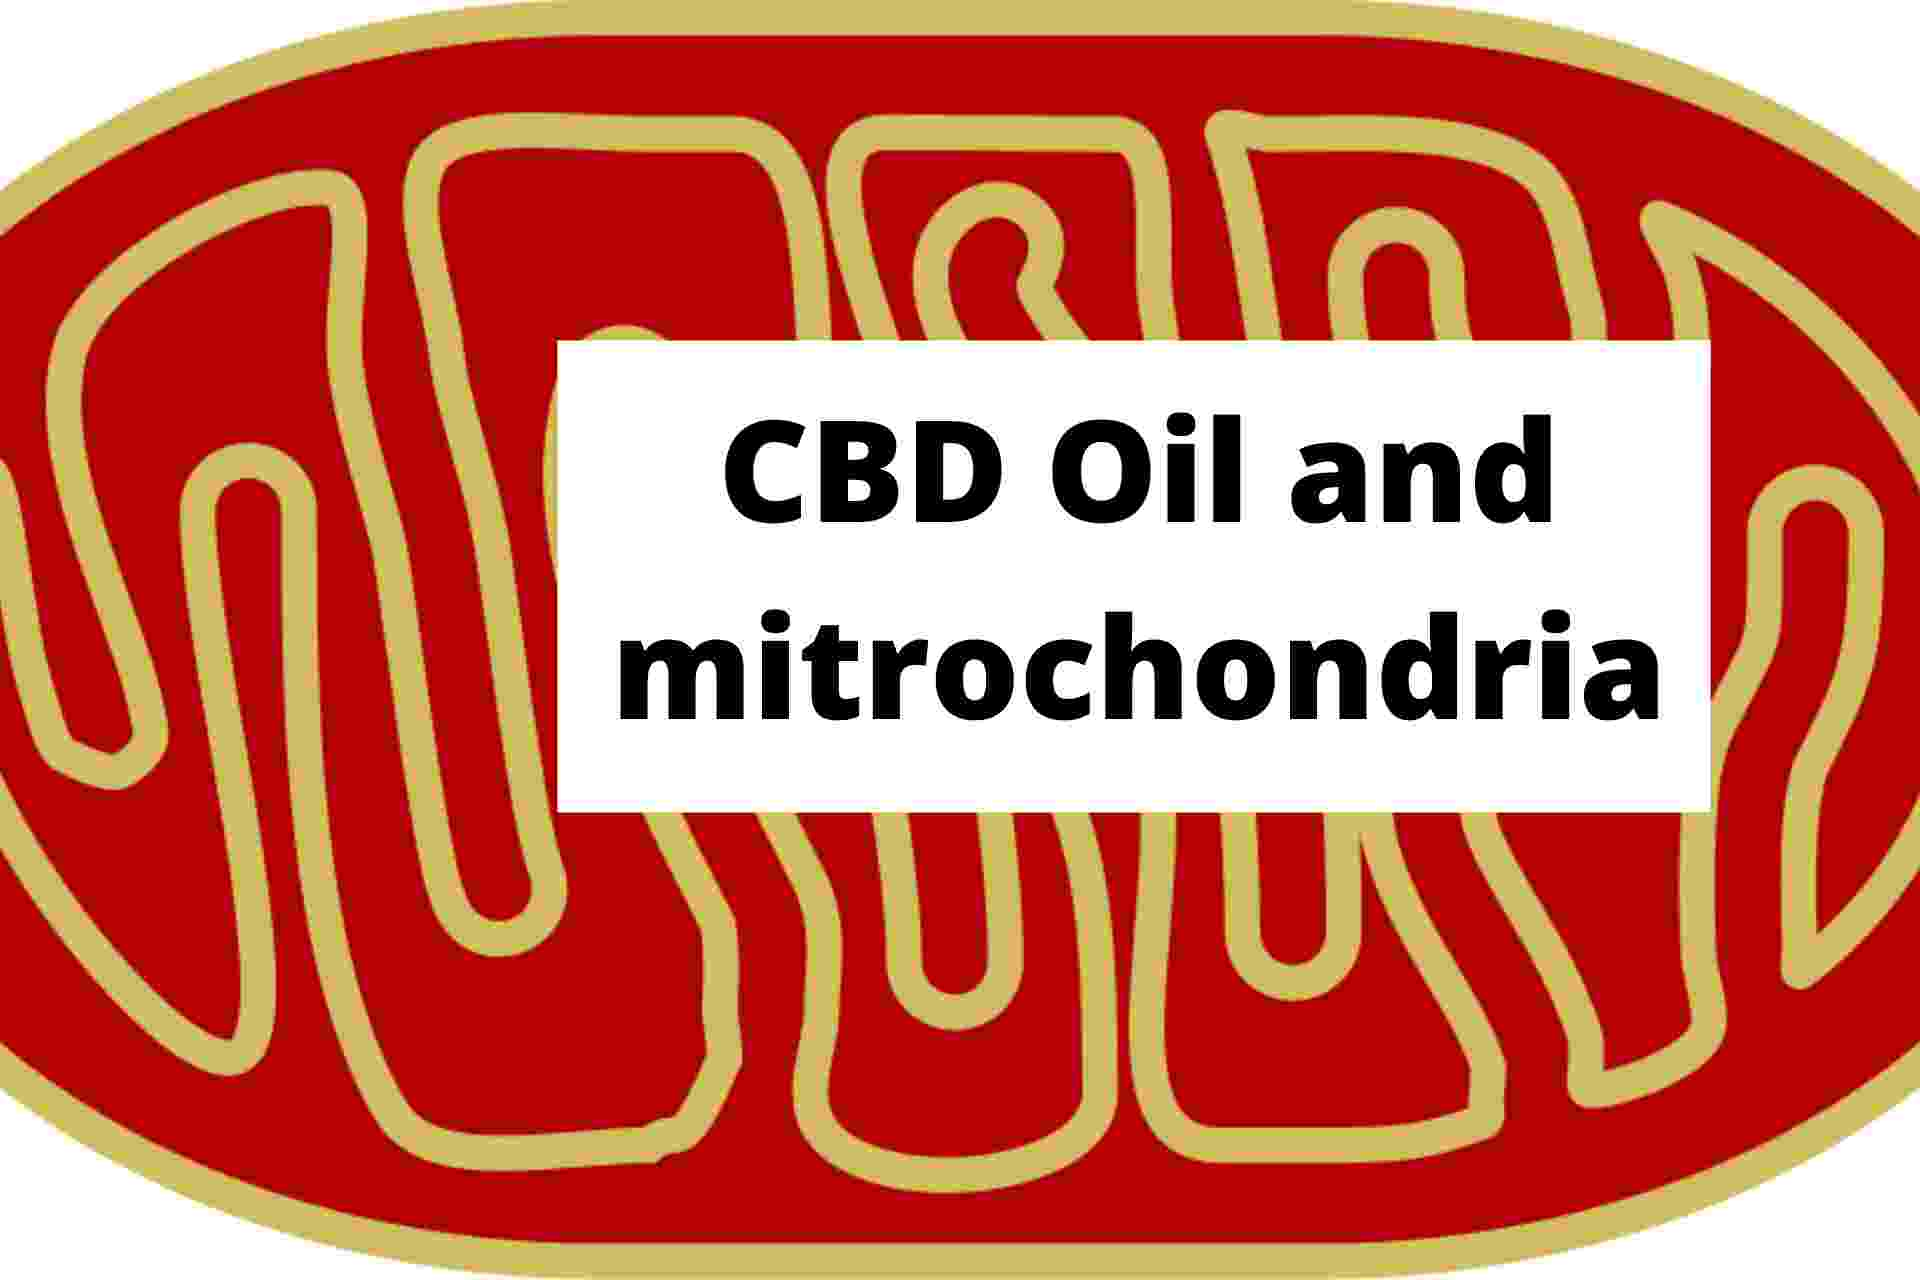 CBD Oil and mitrochondria